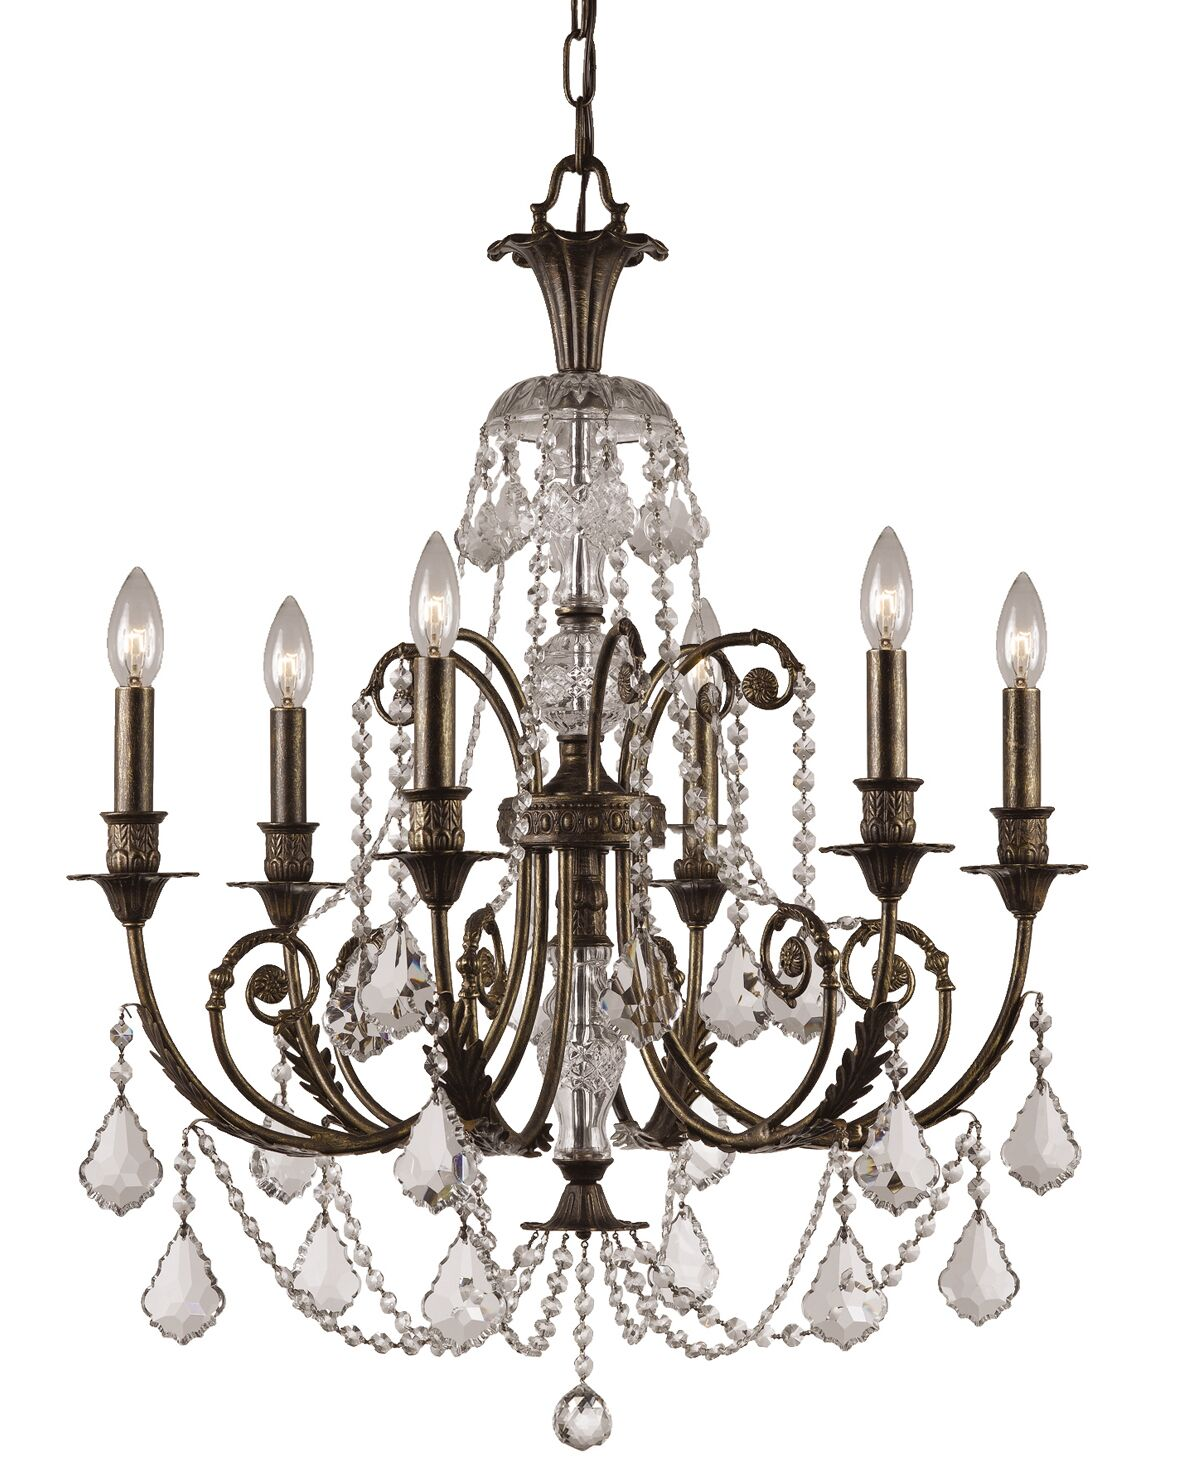 Markenfield 6-Light Candle Style Chandelier Crystal Type: Clear Swarovski Strass